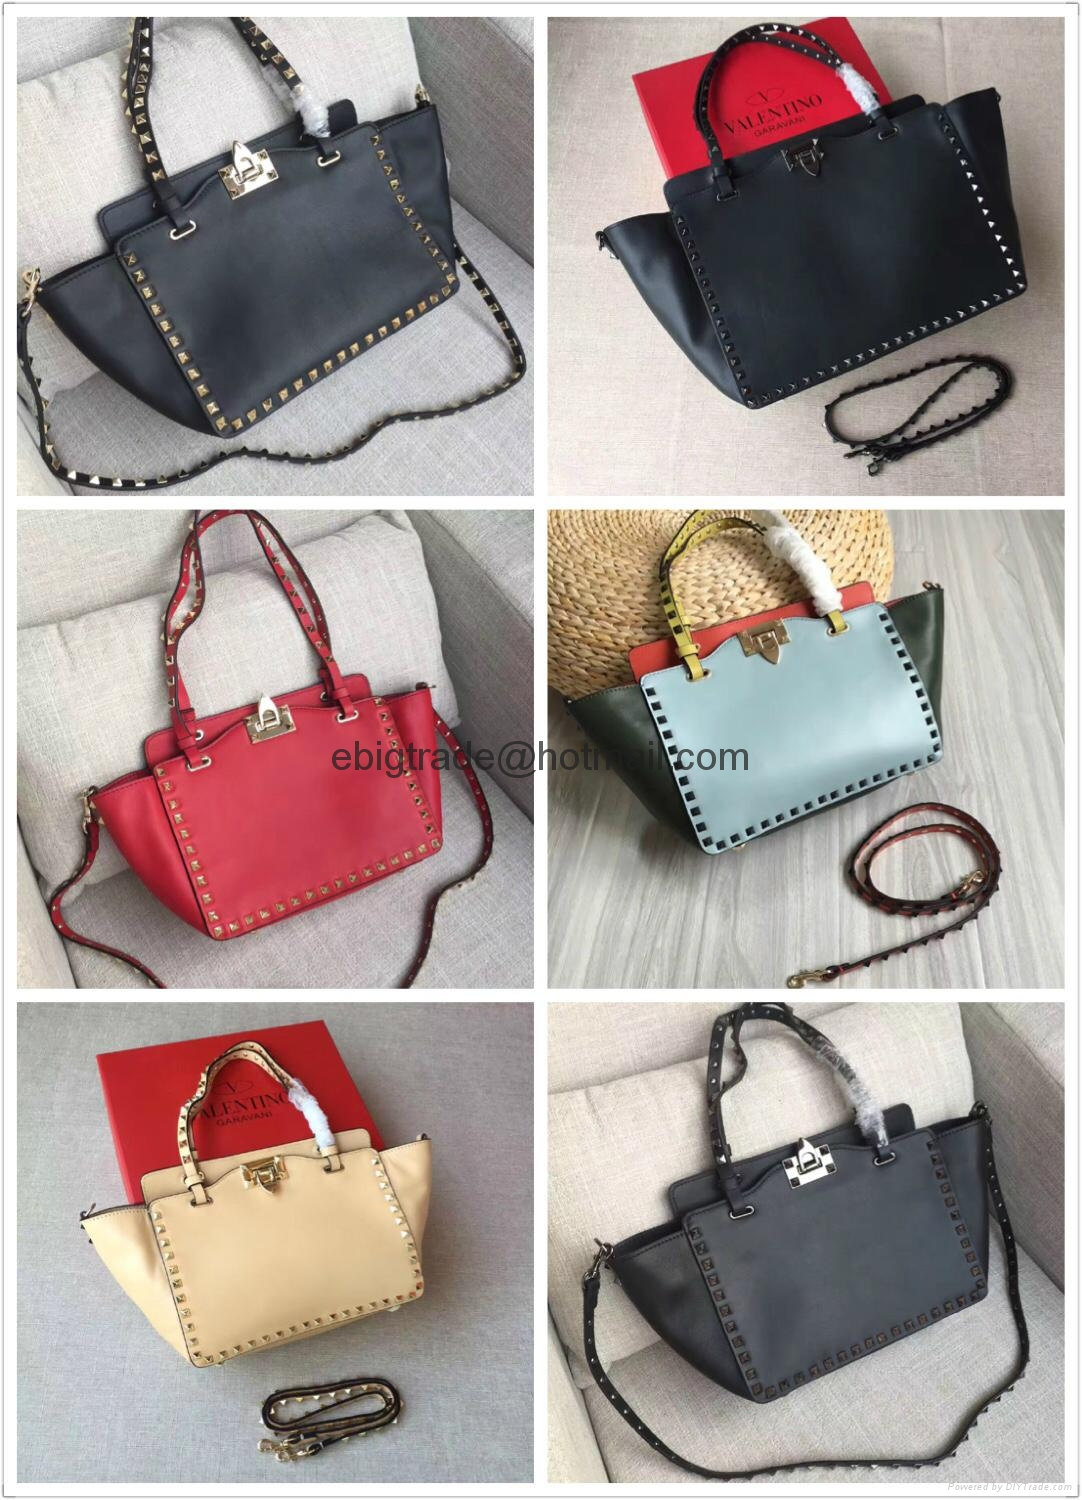 Cheap Valentino Rockstud Leather Bags Valentino handbags Valentino bags purse